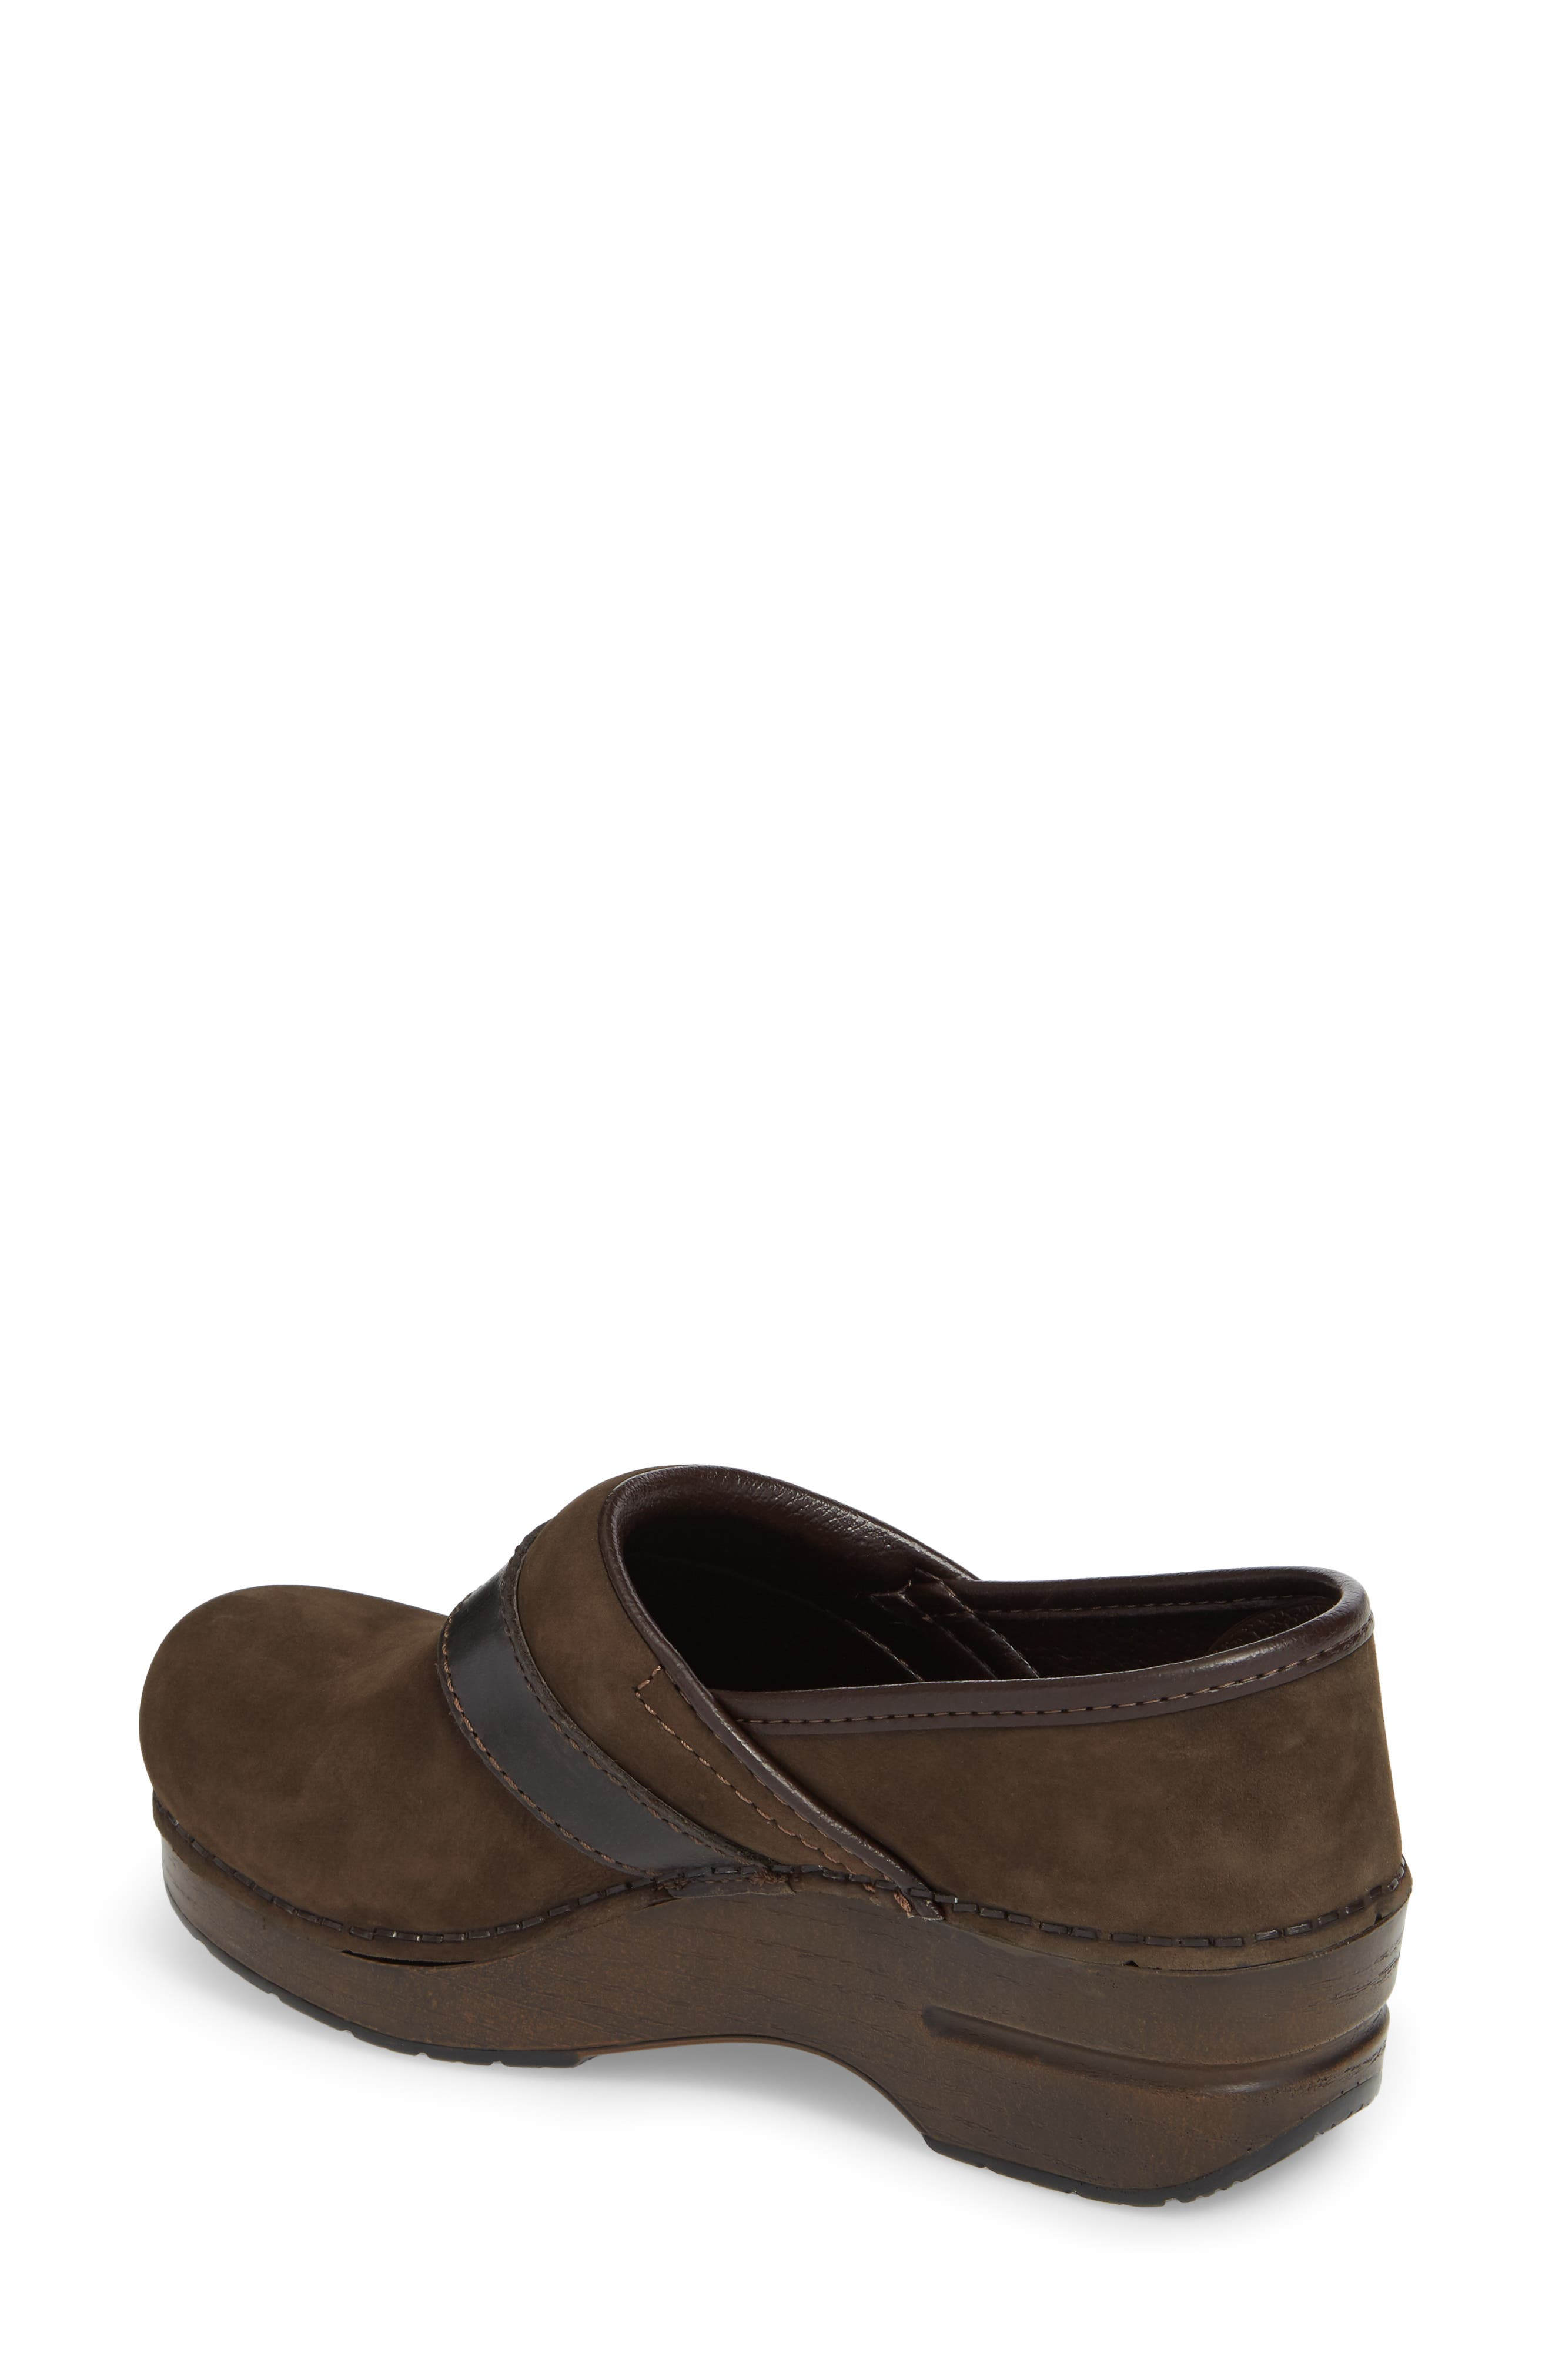 Pammy Clog,                             Alternate thumbnail 2, color,                             Brown Milled Nubuck Leather